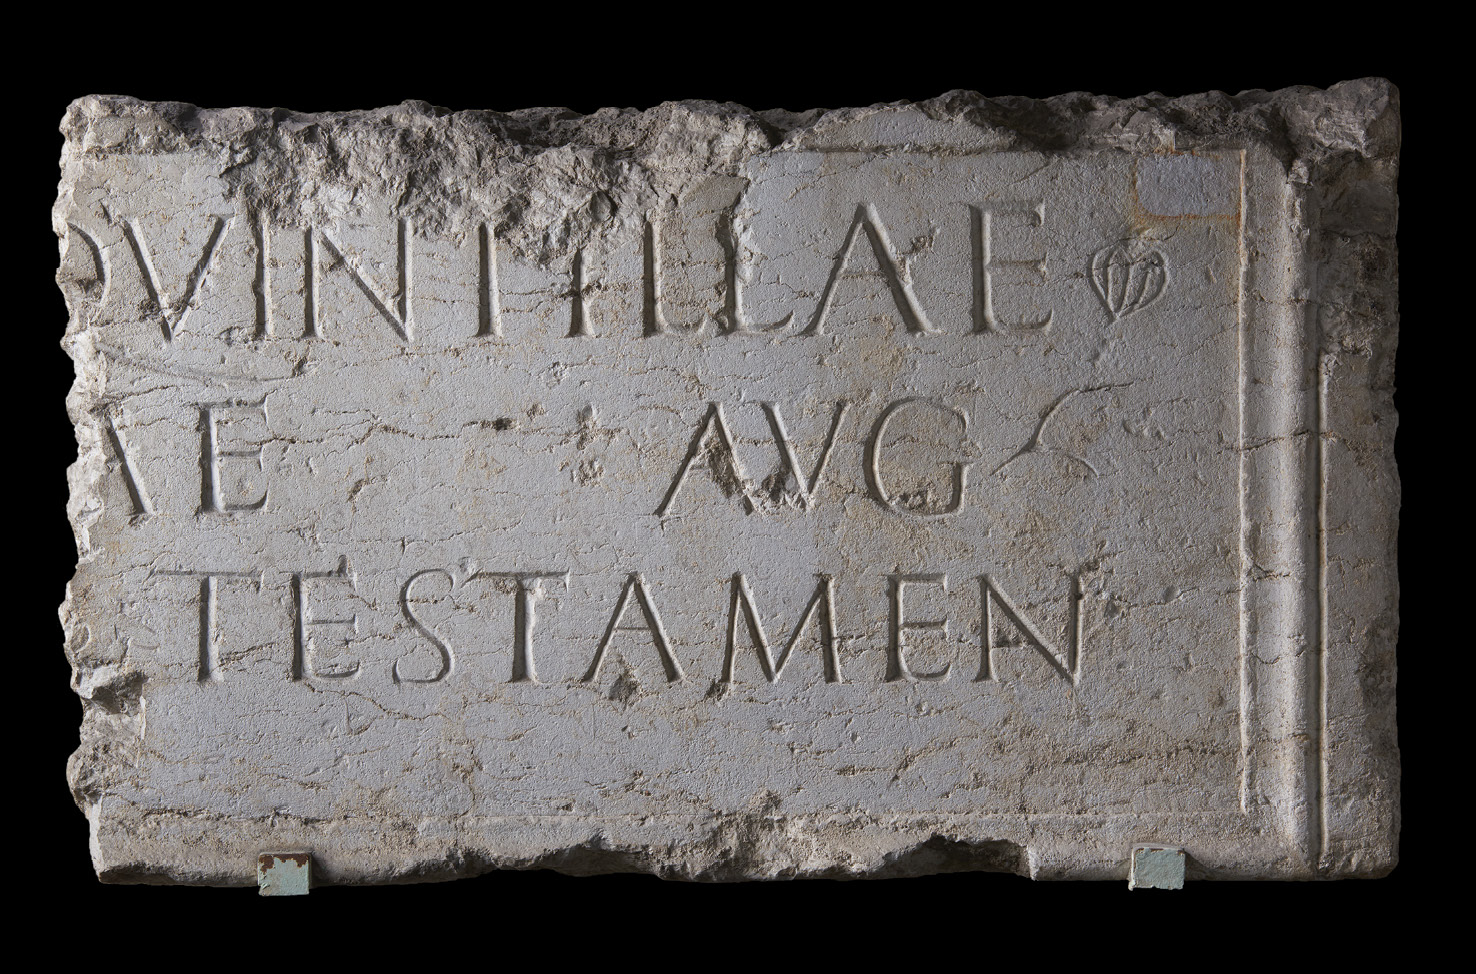 ABOVE A surviving fragment from an enormous inscription honouring Quintilla (named on the top line), and erected in accordance with her will (the testamen at the bottom). It demonstrates Quintilla's desire to be remembered as a flaminica Augustae.